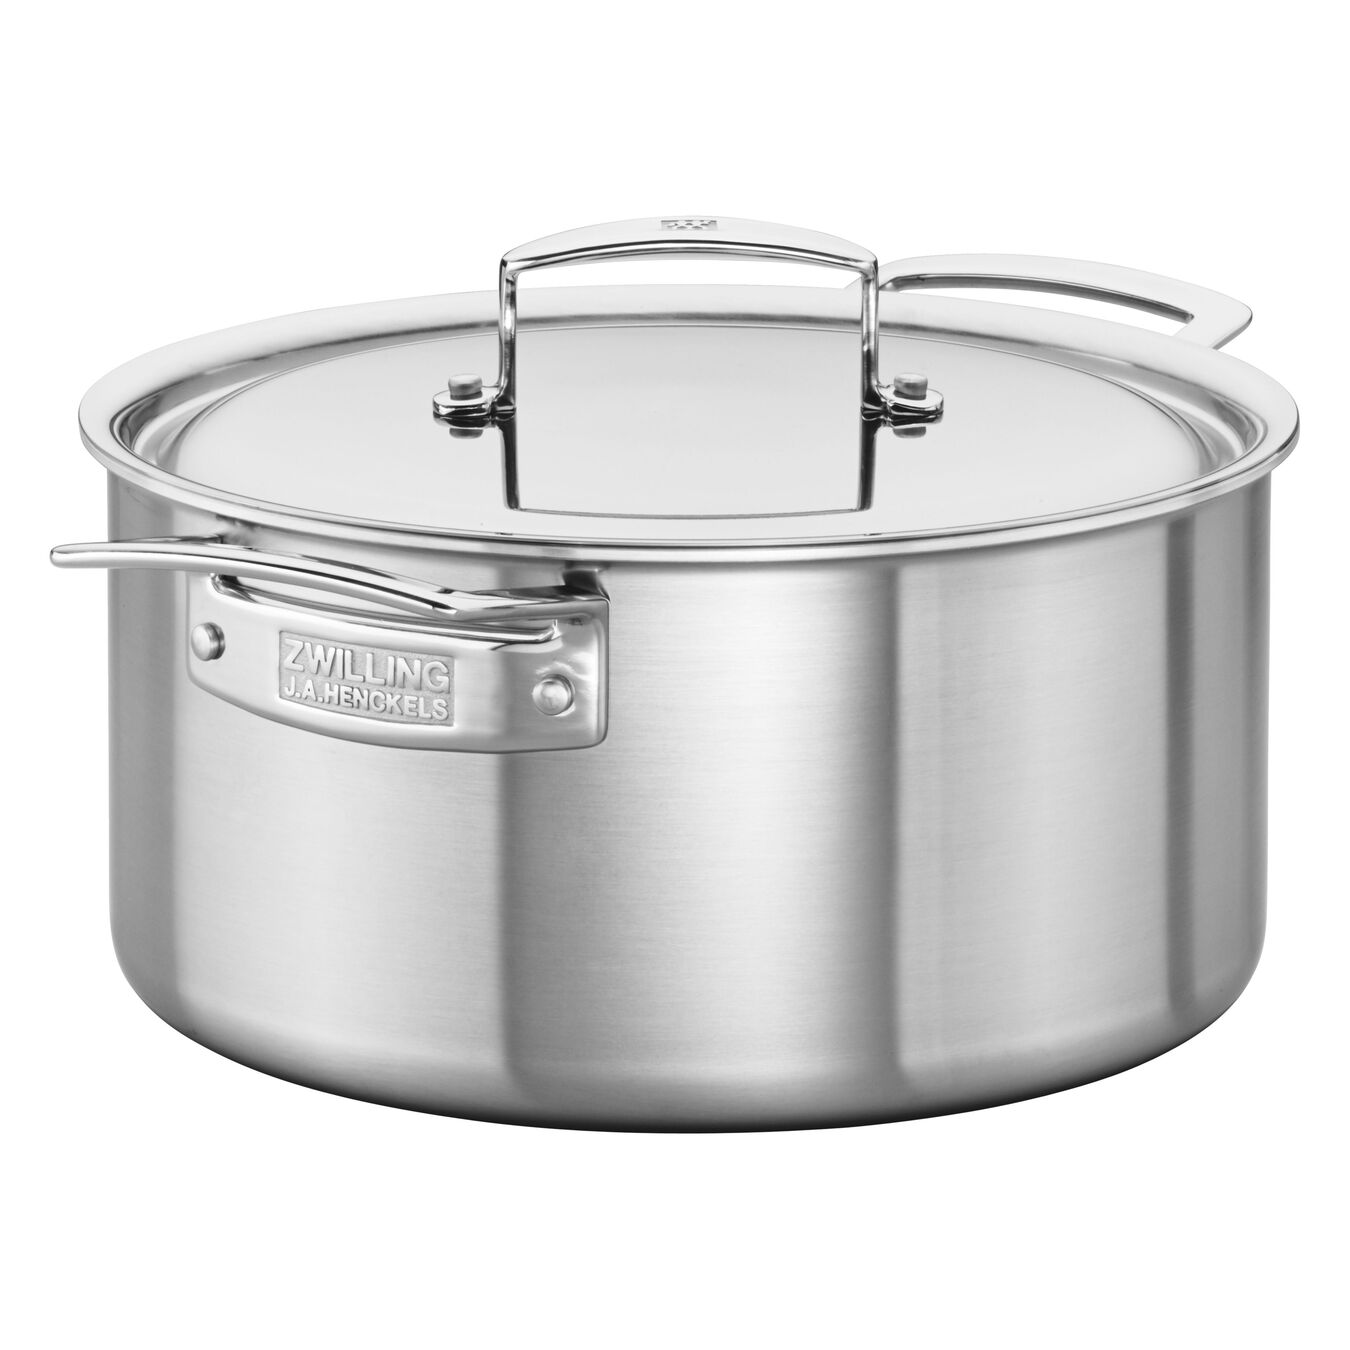 Stainless Steel 5.5-Qt. Dutch Oven,,large 3